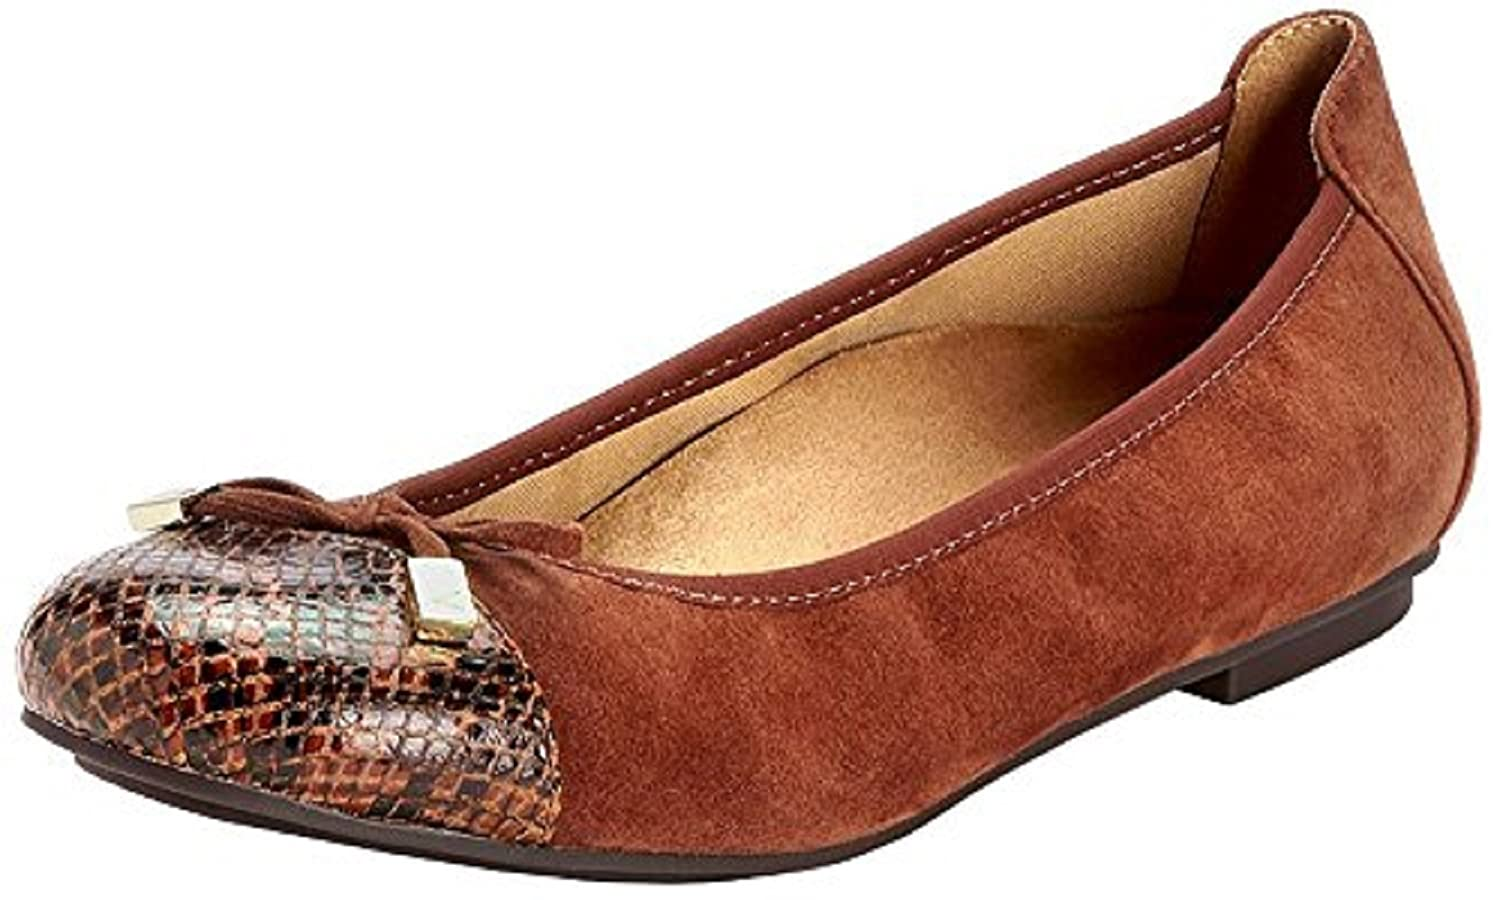 Vionic Women's Spark Minna Ballet Flat B01NALLNLY 11 B(M) US|Saddle Snake